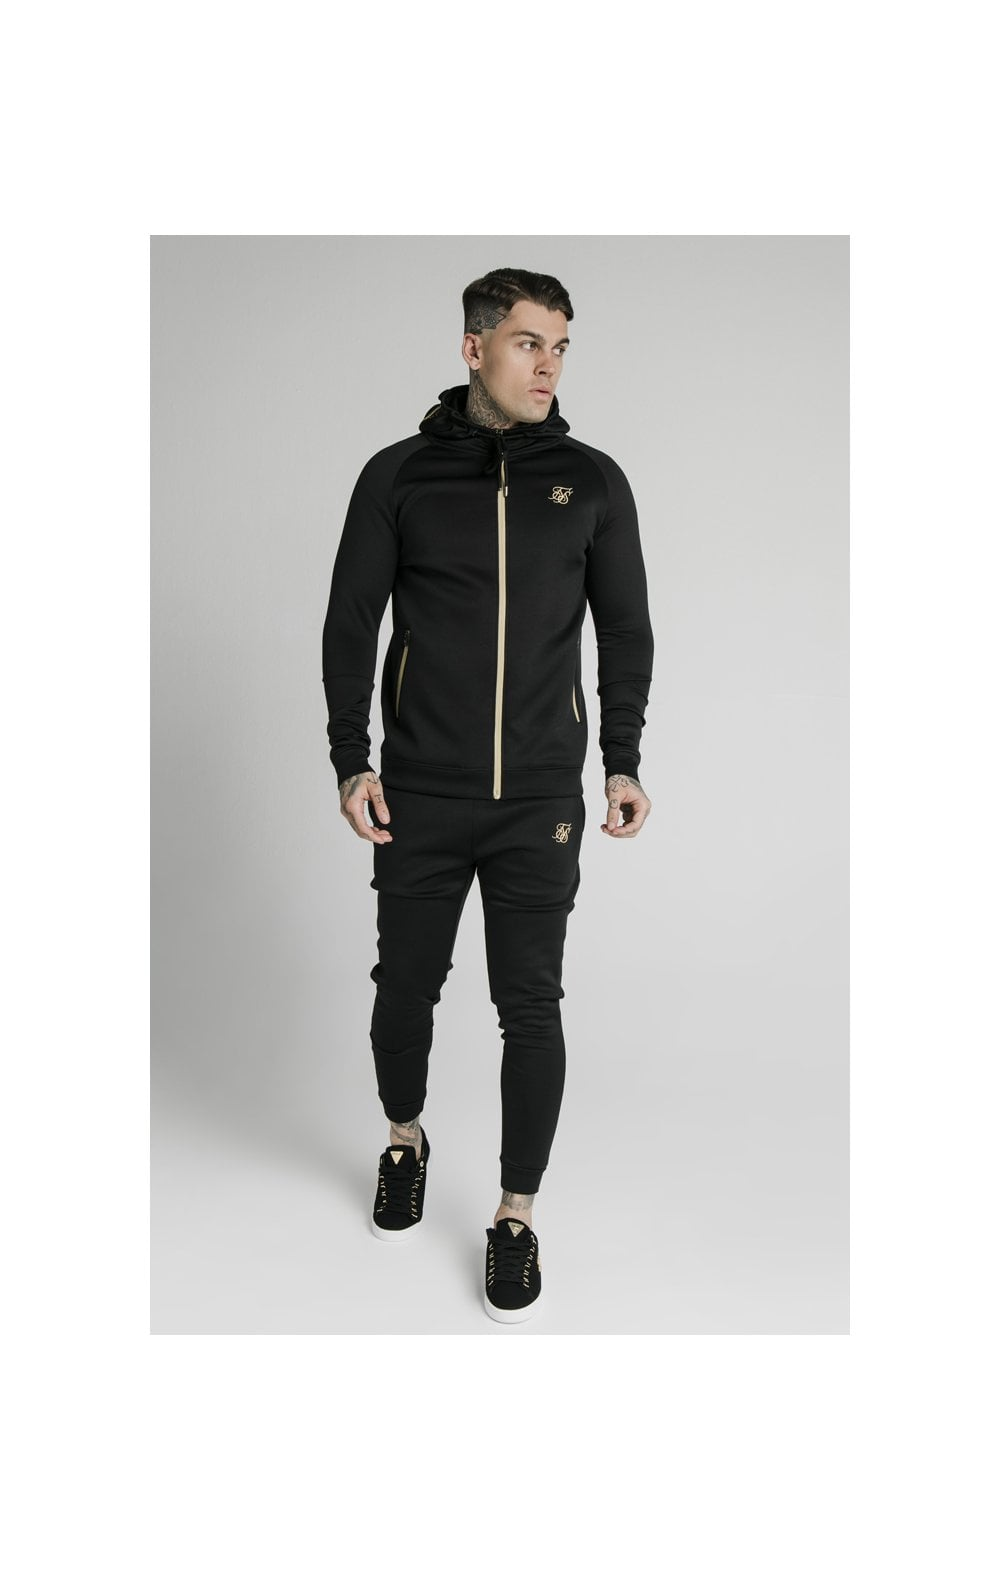 Load image into Gallery viewer, SikSilk Element Zip Through Hoodie - Black & Gold (3)